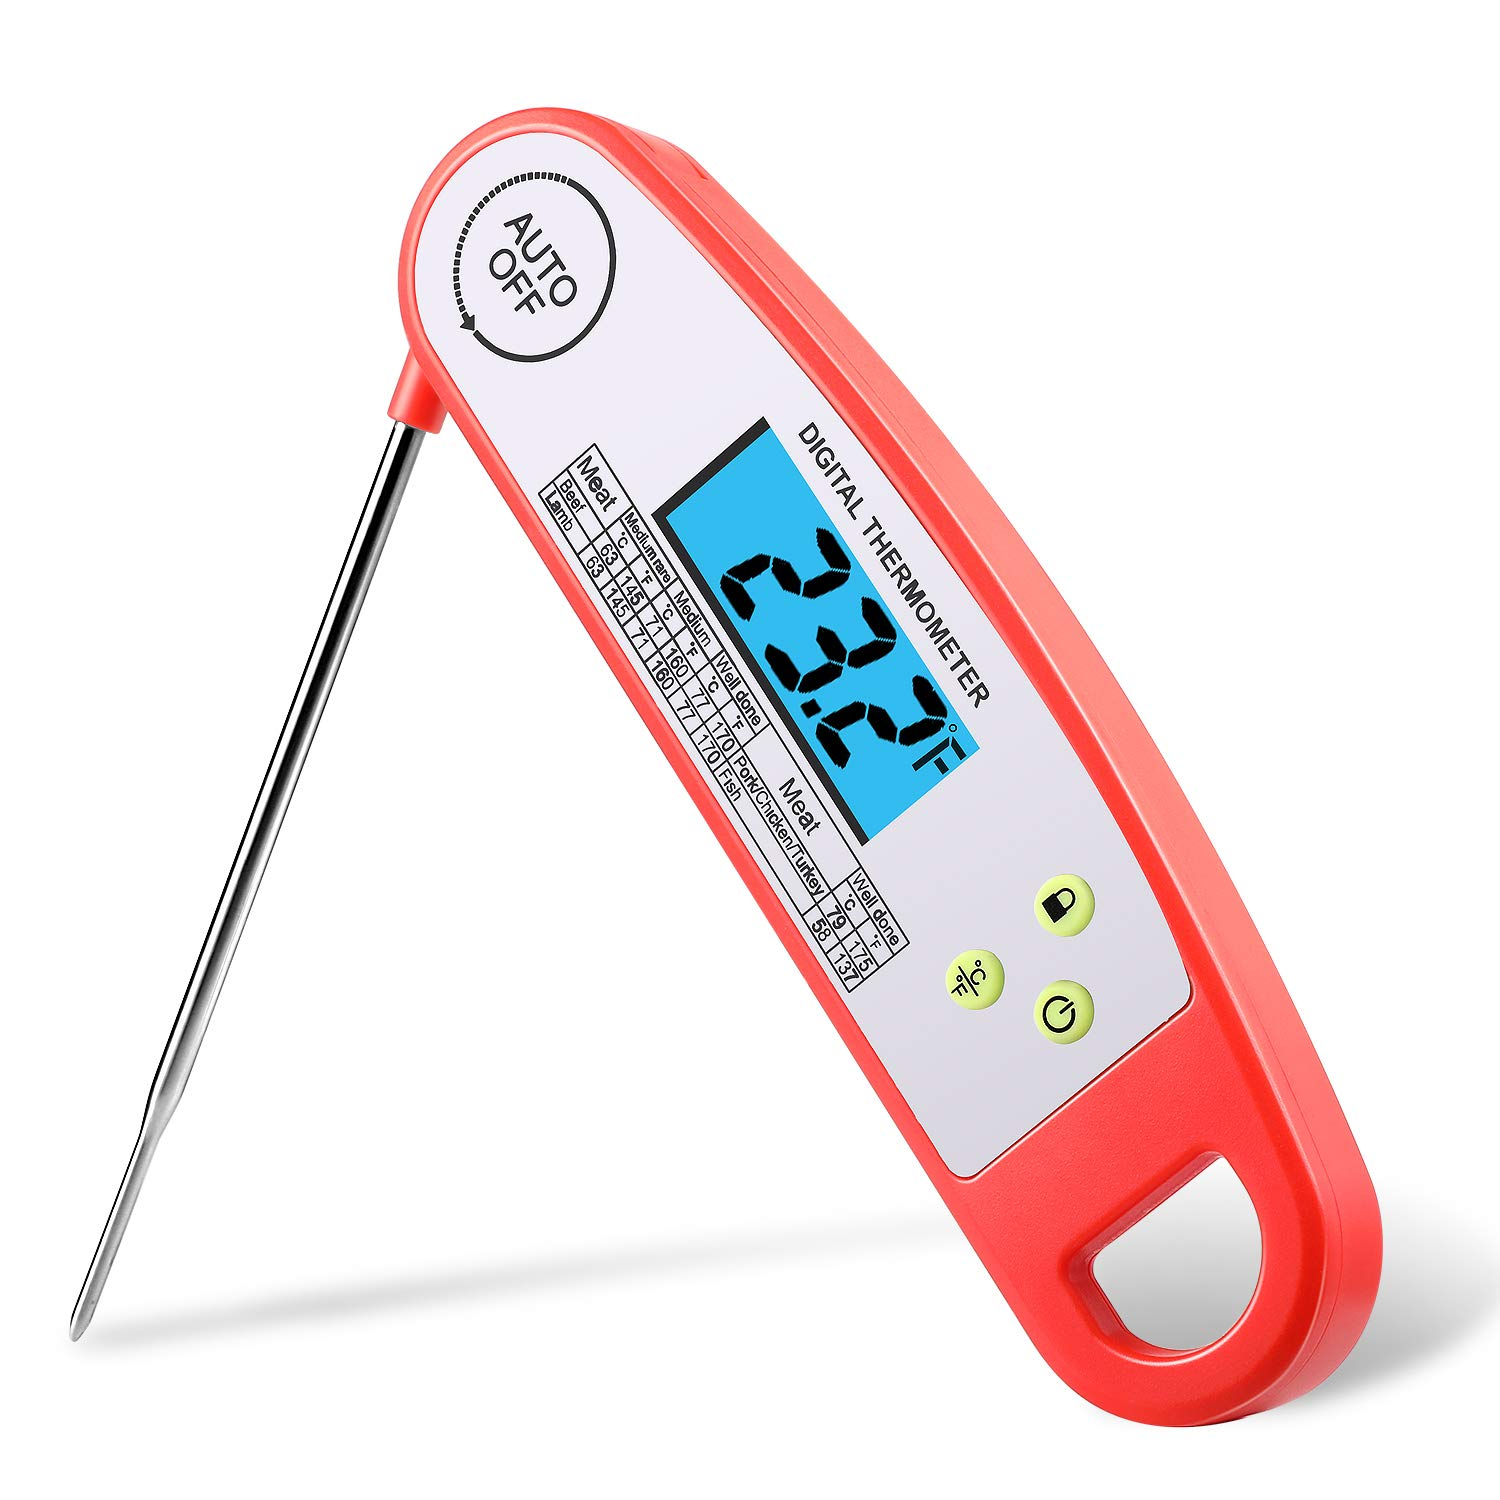 EDEALER Waterproof Digital Meat Thermometer-Kitchen Food Cooking Thermometer with Backlight LCD - Super Fast Electric Meat Thermometer Probe for BBQ Grilling Smoker Candy Baking Turkey DT-128